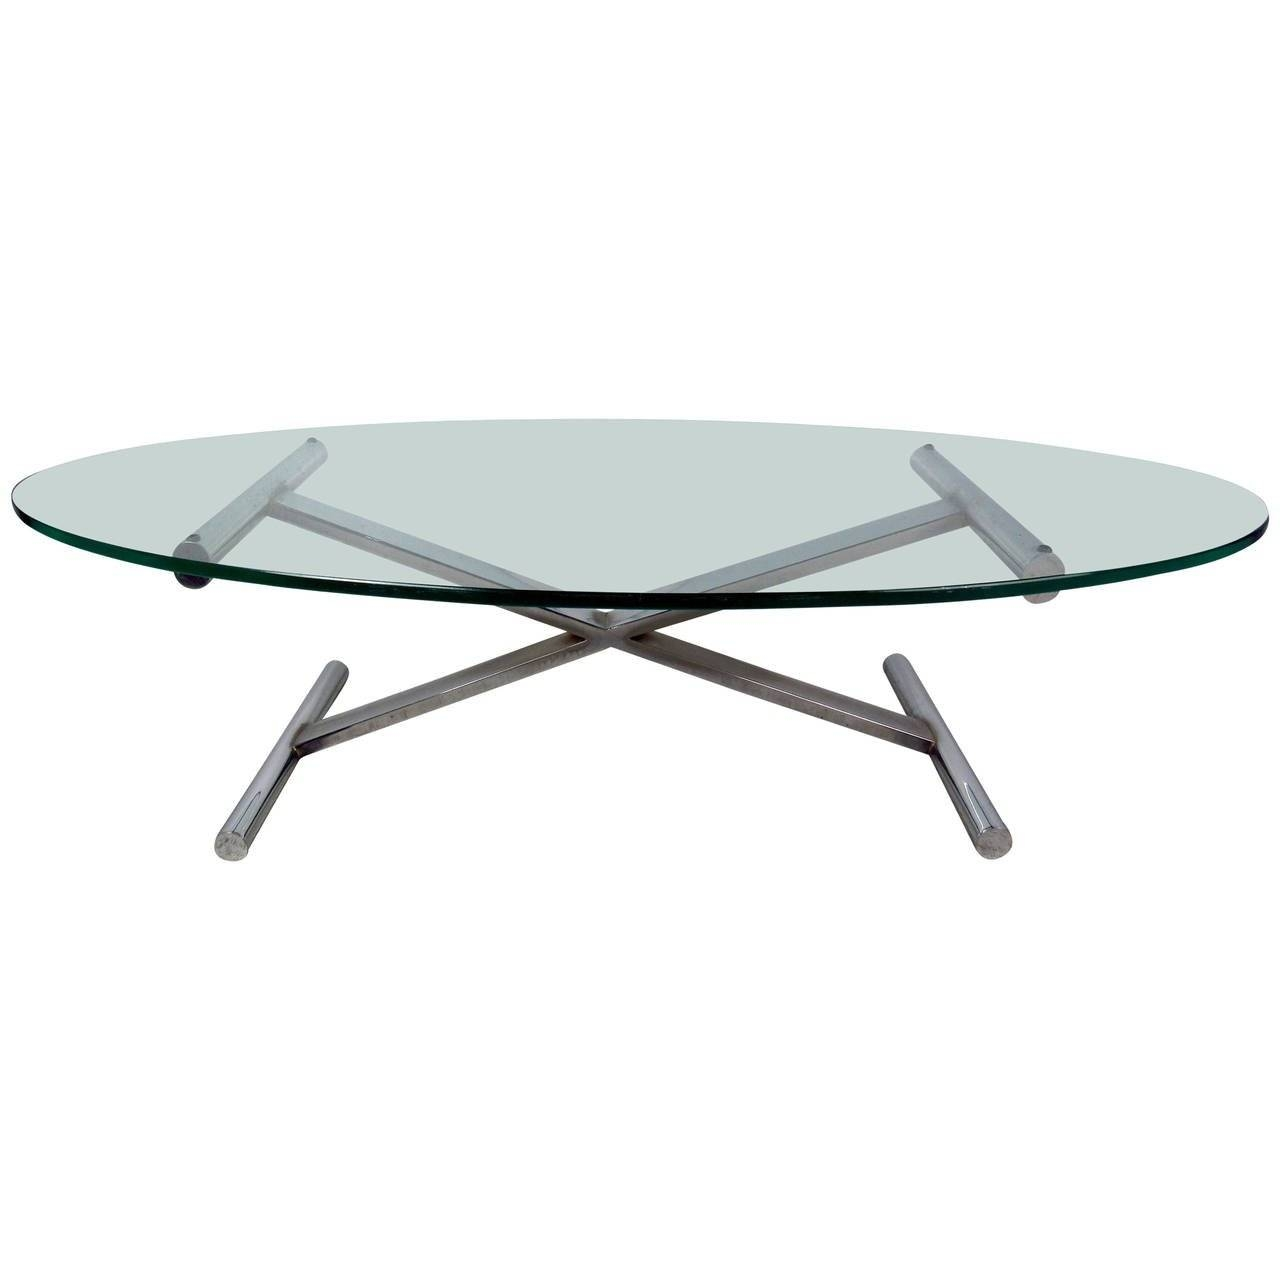 Oval Shaped Glass Top Coffee Table With Chrome Base For Sale At with regard to Oval Shaped Coffee Tables (Image 24 of 30)